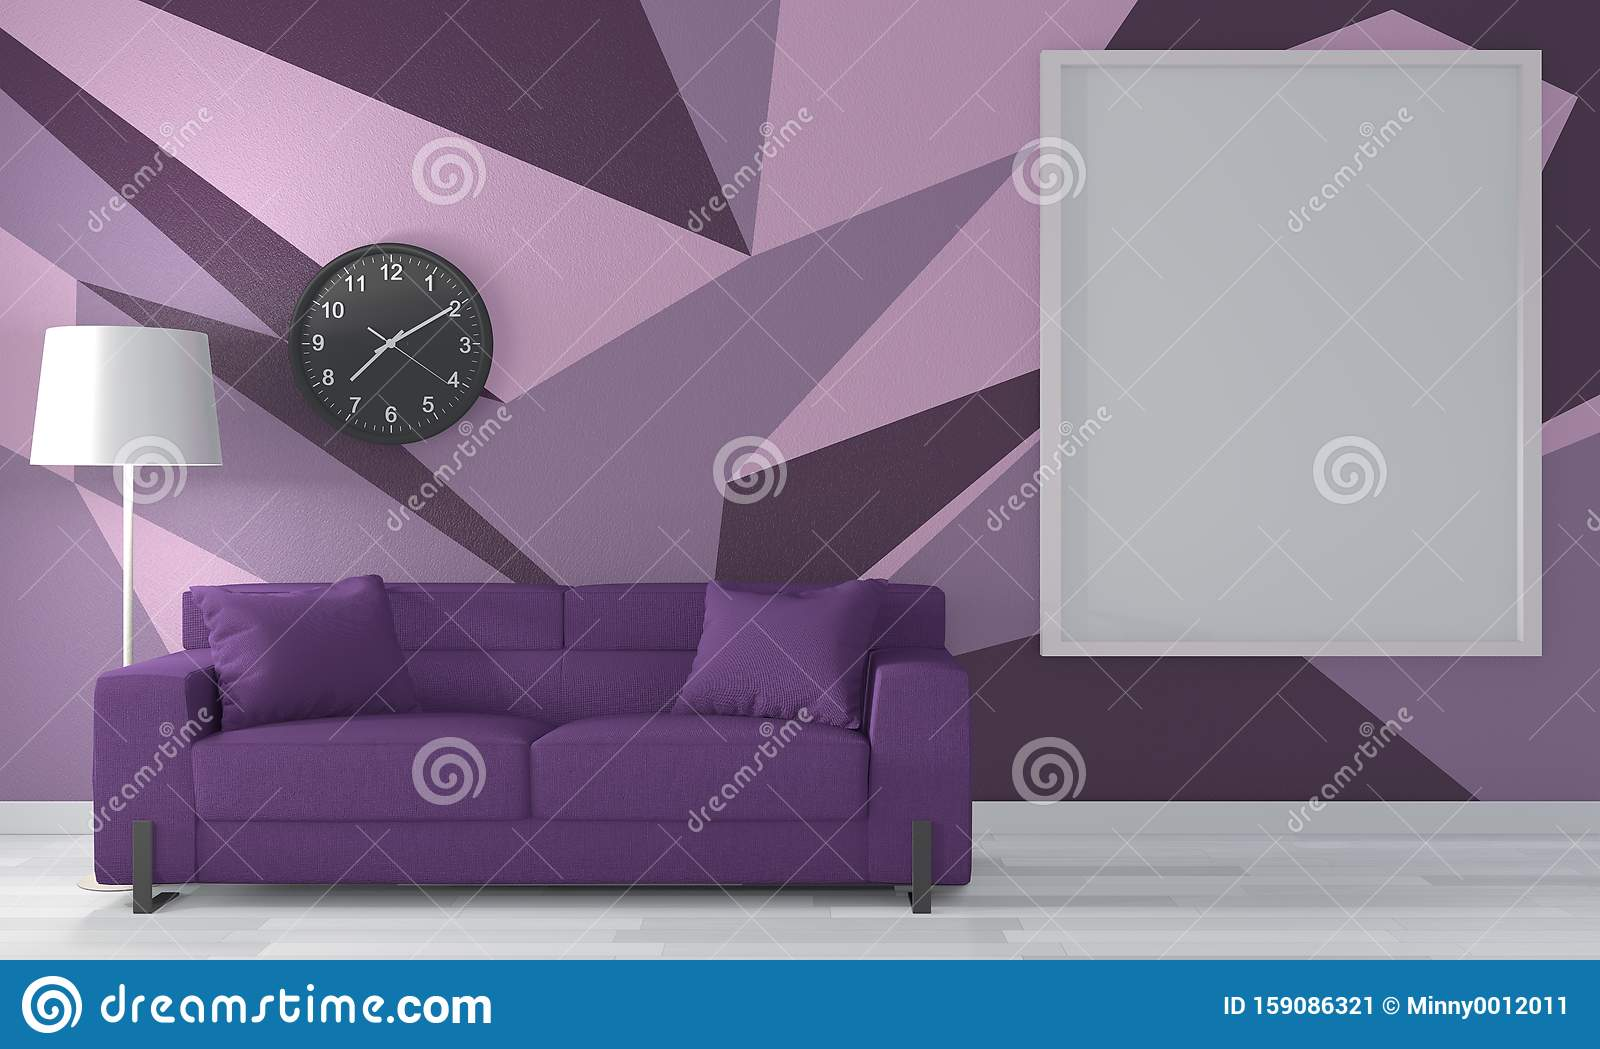 Mock Up Ideas Of Purple Room Geometric Wall Art Paint Design Color Full Style On Wooden Floor 3d Rendering Stock Illustration Illustration Of Concept Branch 159086321